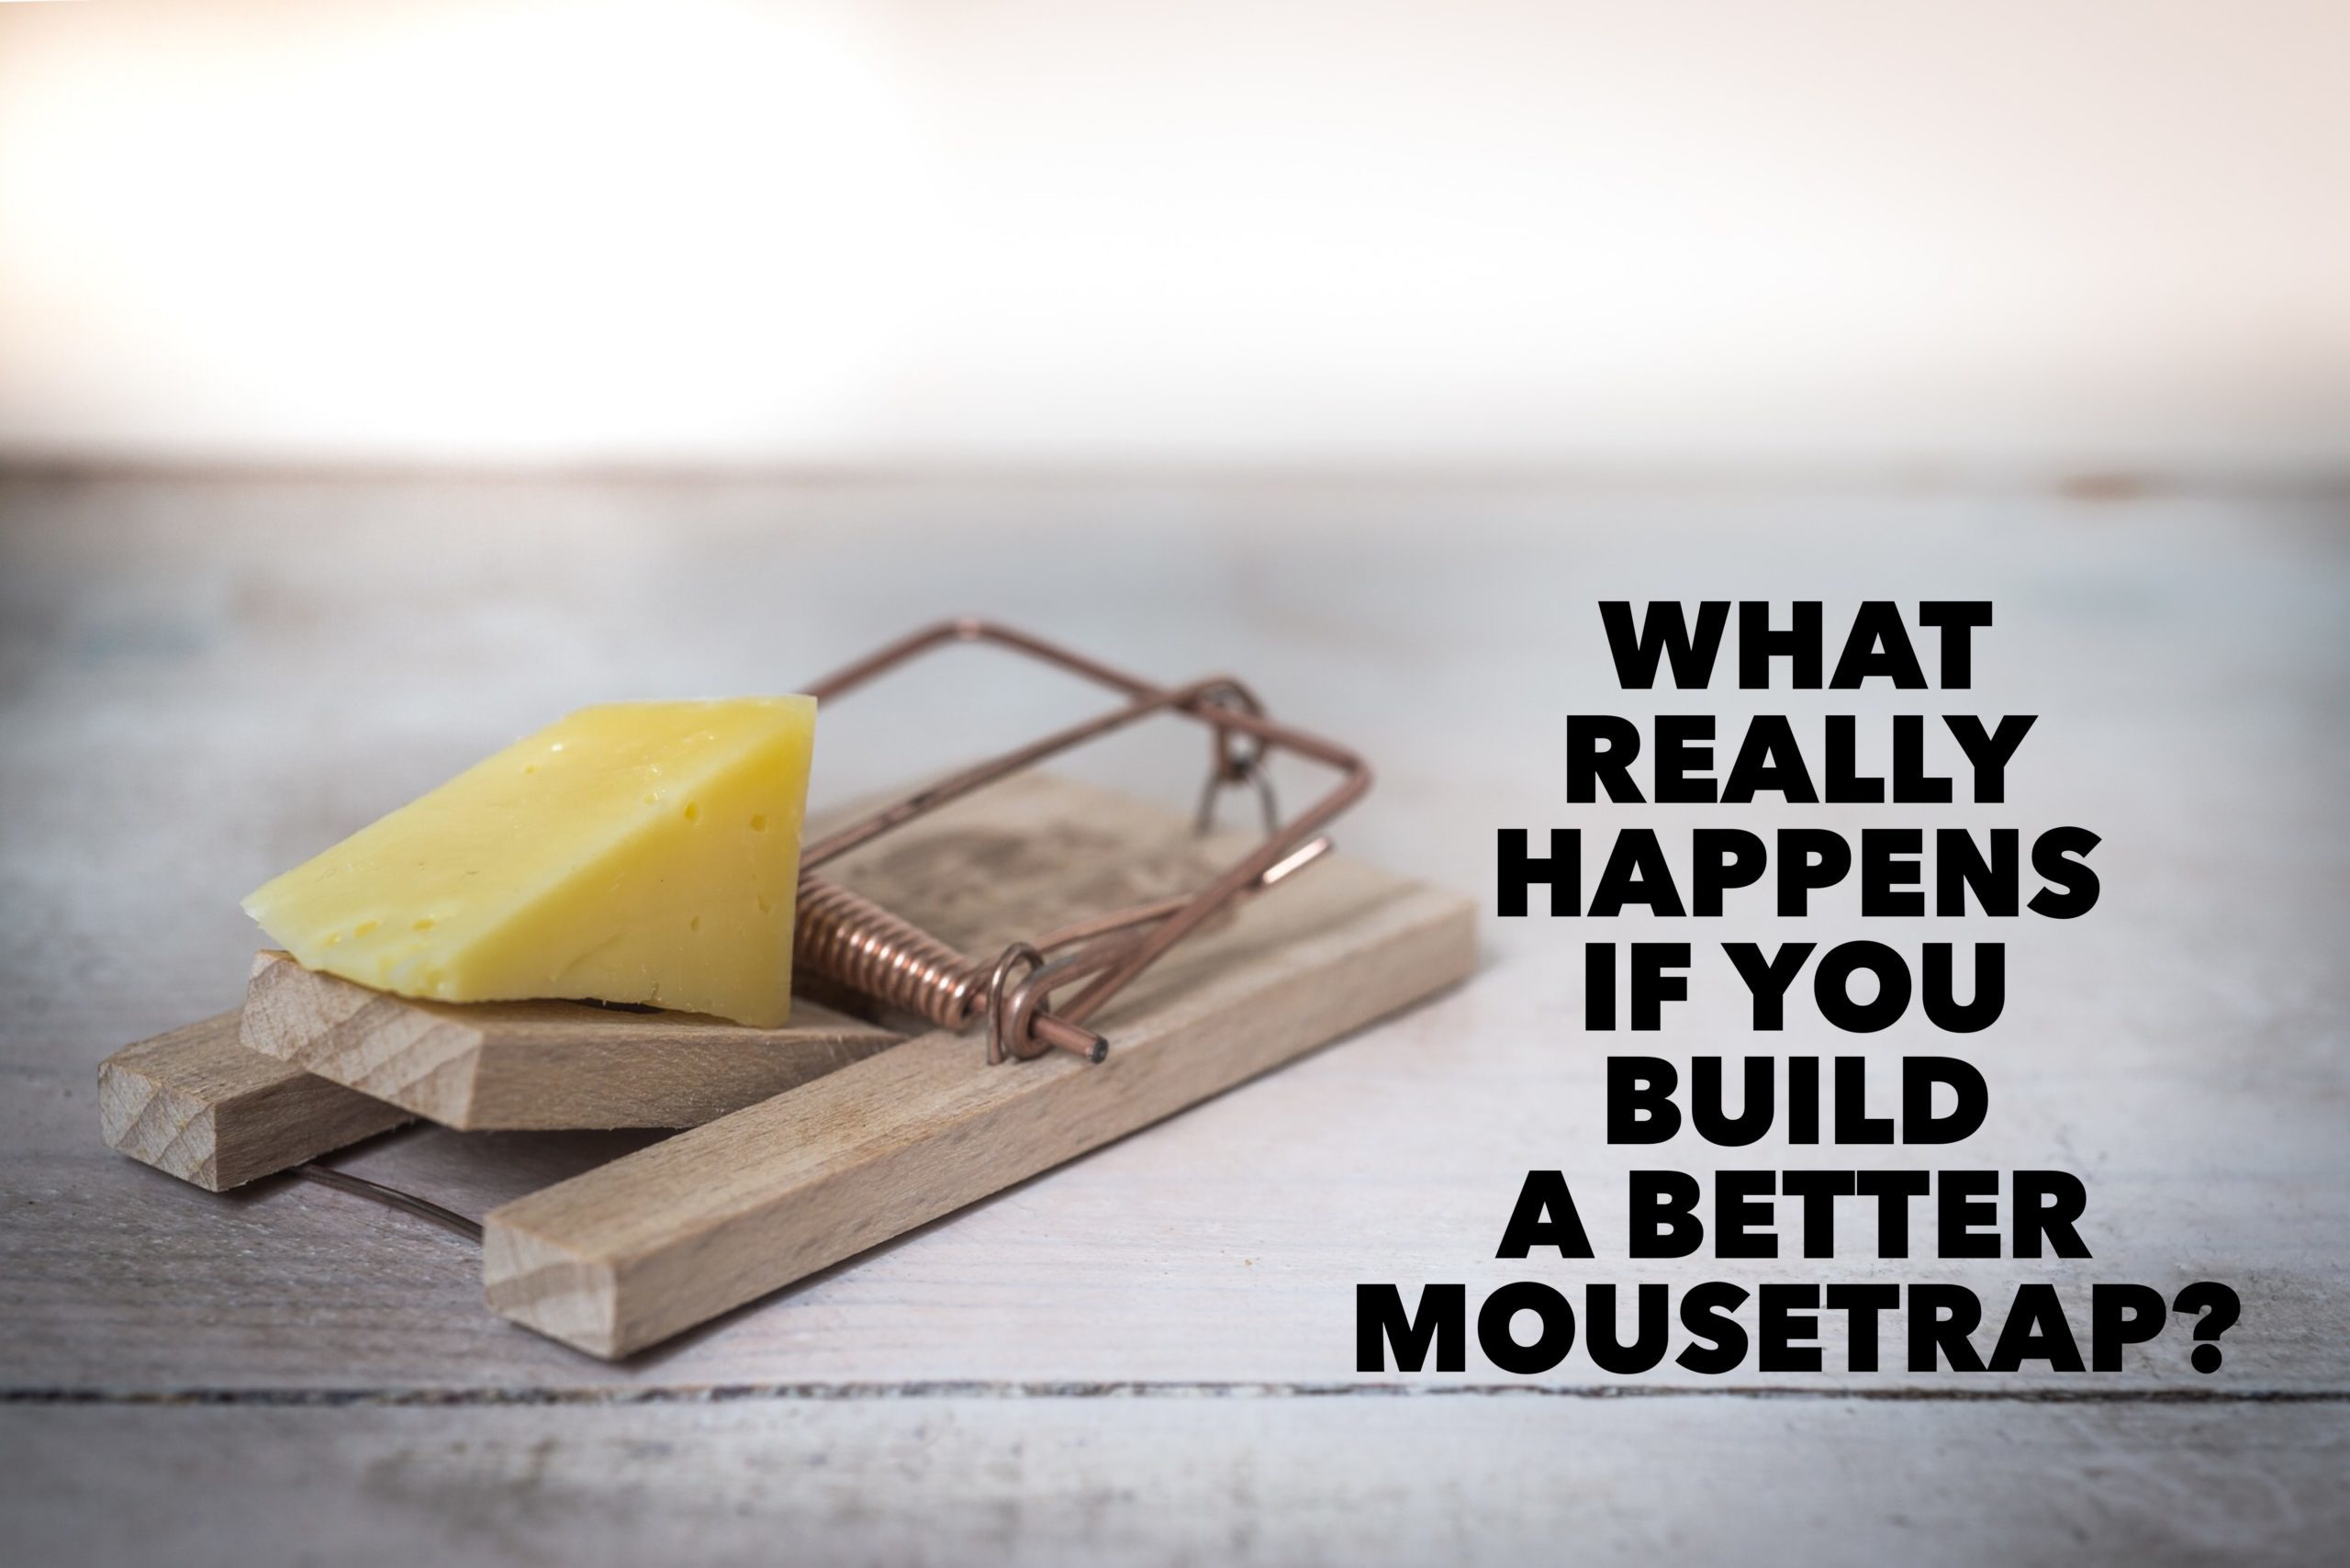 What Really Happens if You Build a Better Mousetrap?